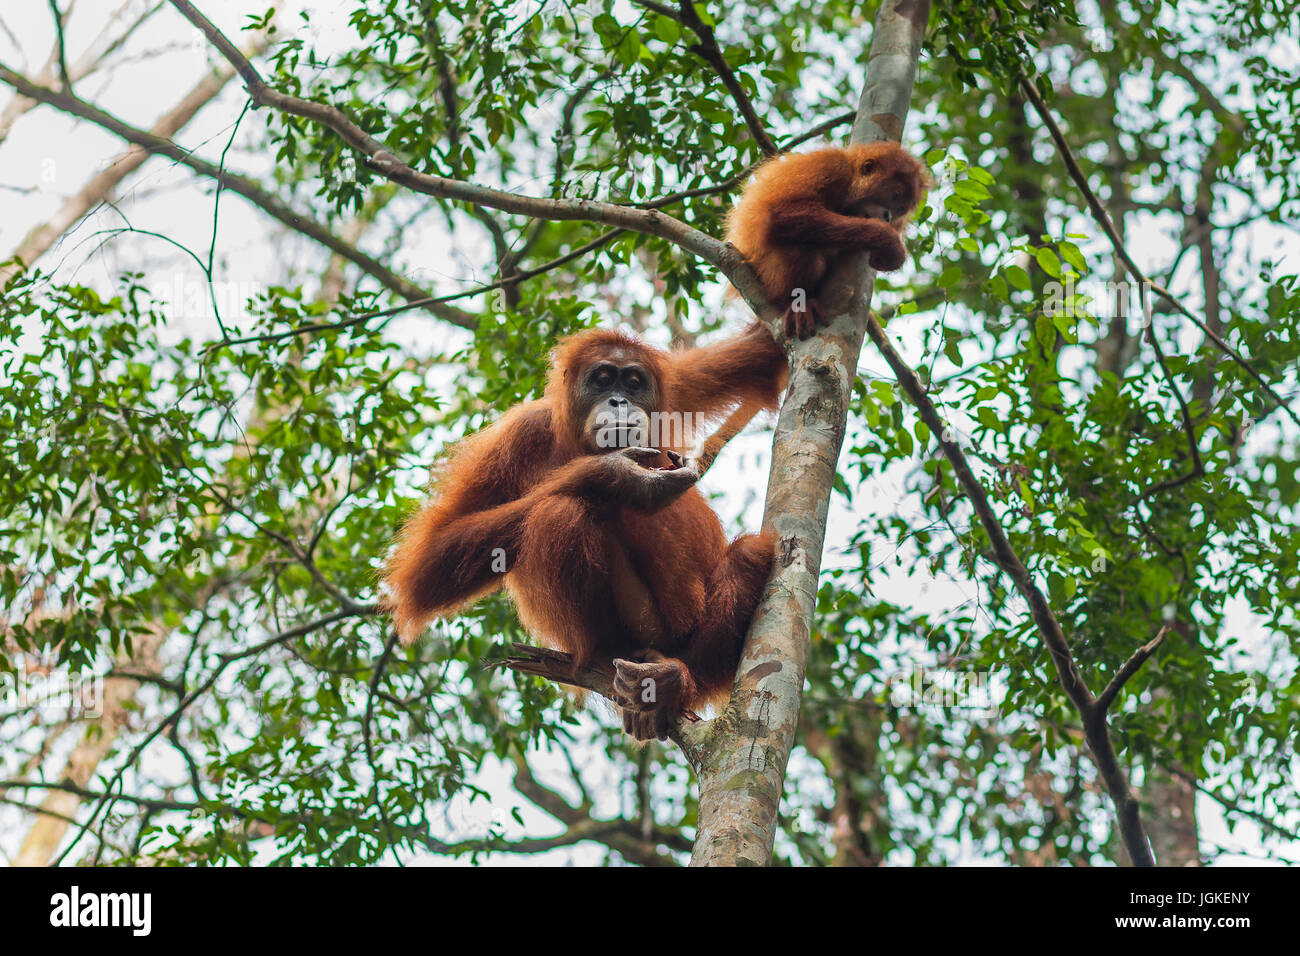 Orangutan in the wild forests of Sumatra Stock Photo